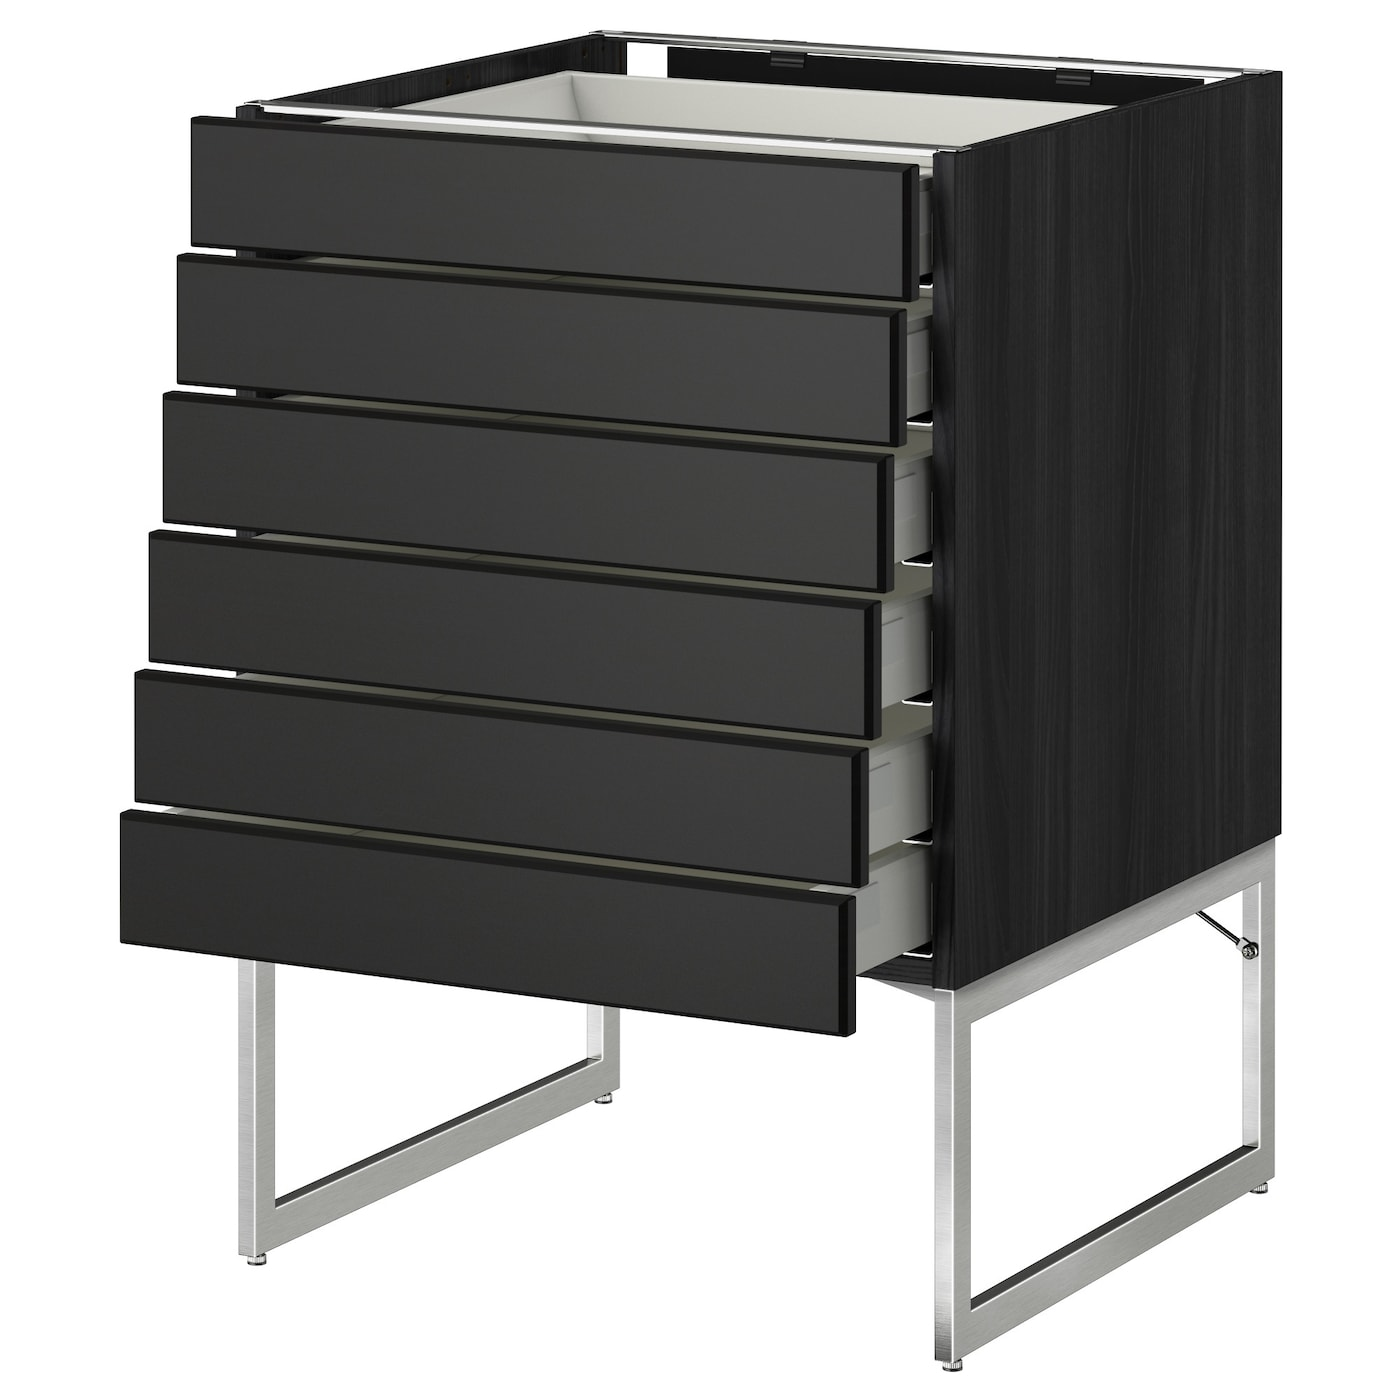 metod maximera base cabinet 6 fronts 6 low drawers black laxarby black brown 60x60x60 cm ikea. Black Bedroom Furniture Sets. Home Design Ideas